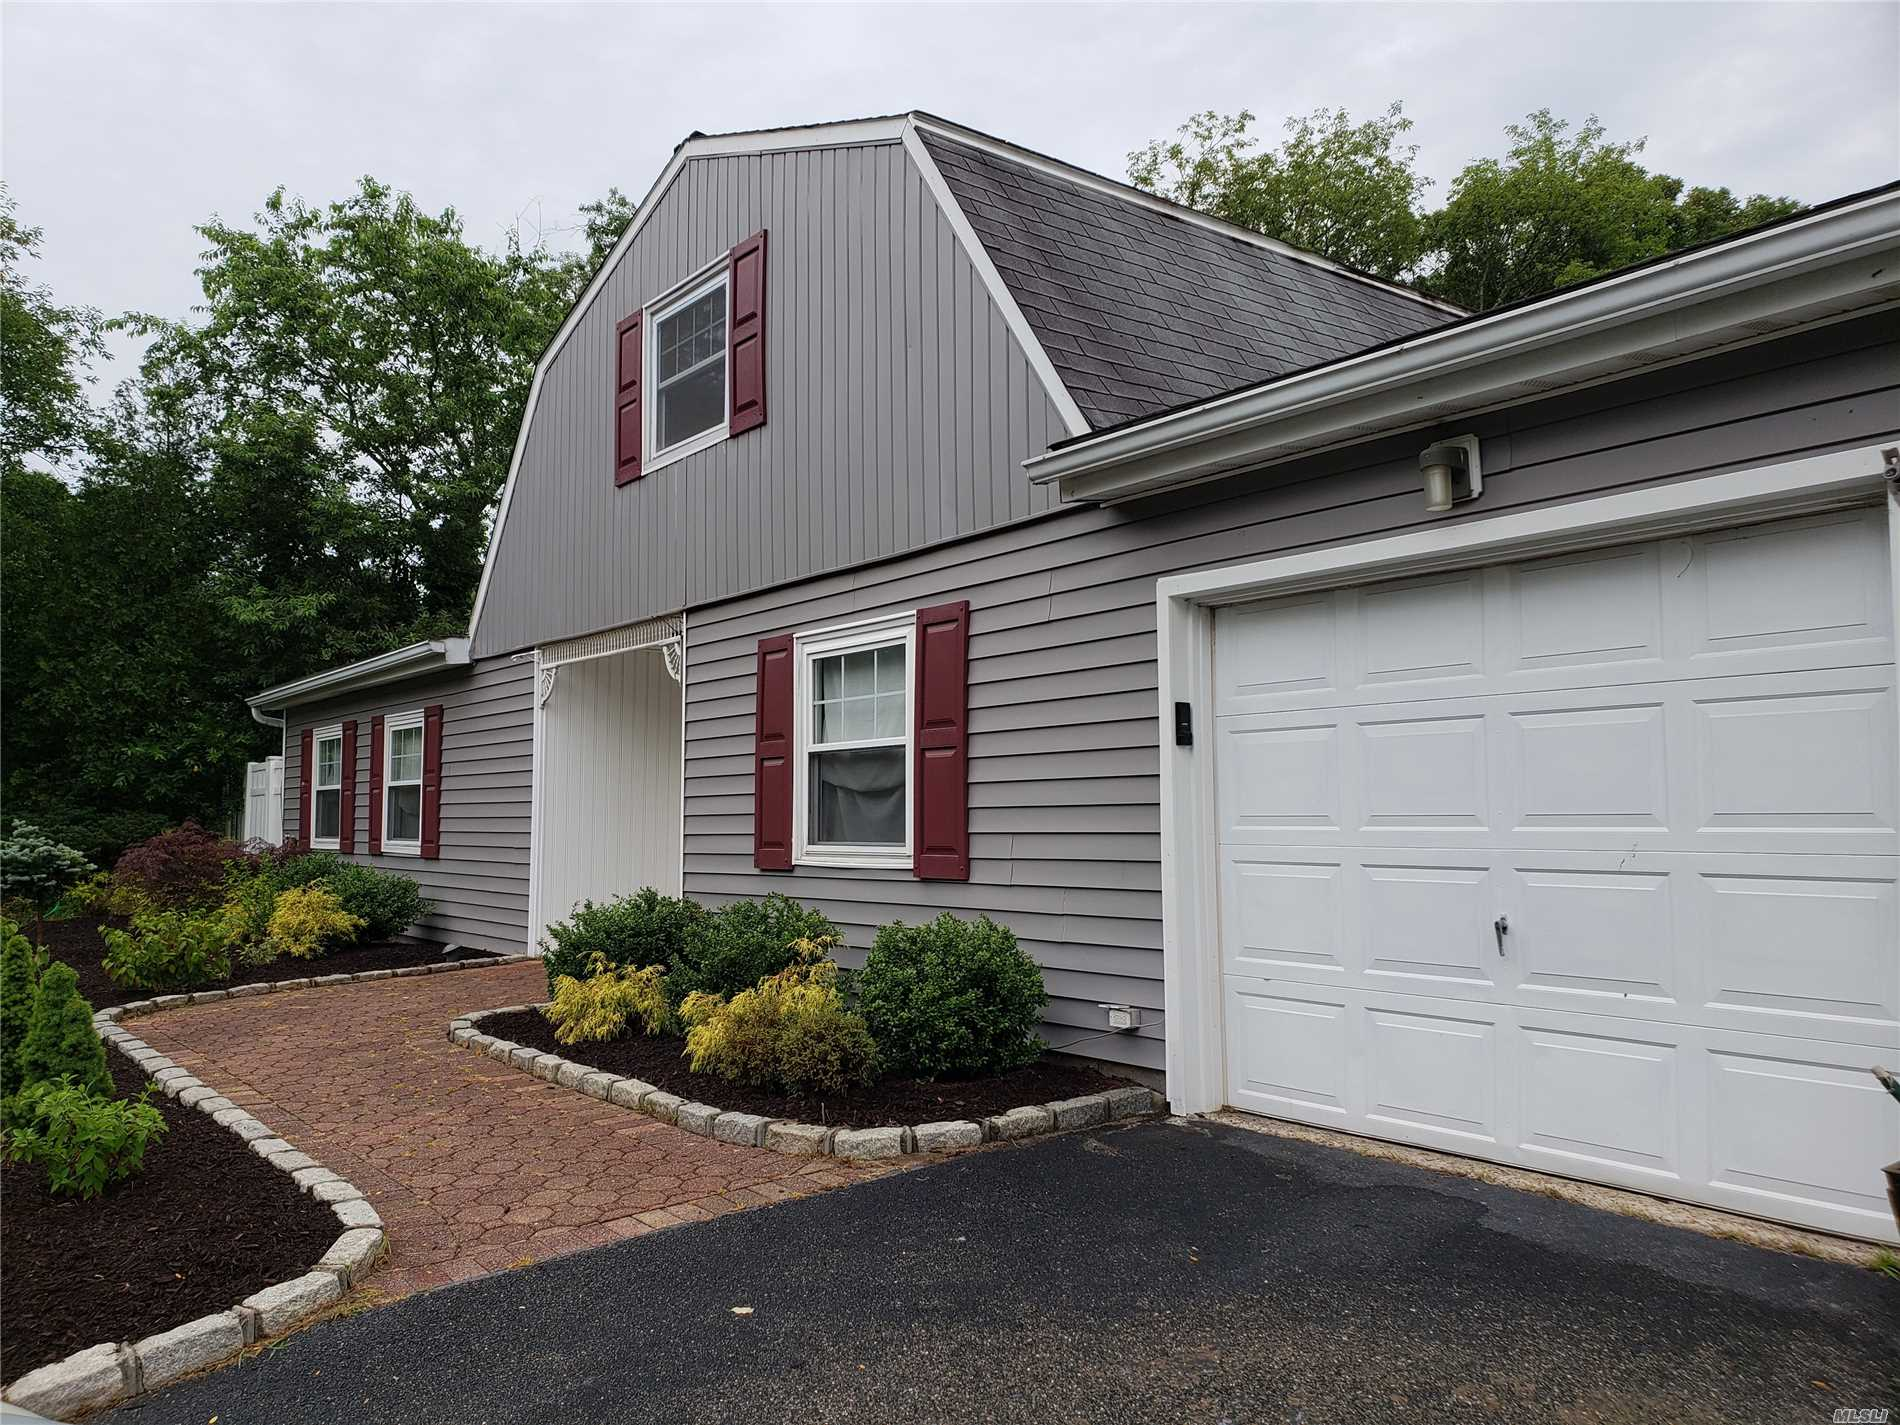 5 Lollypine Ln - Medford, New York